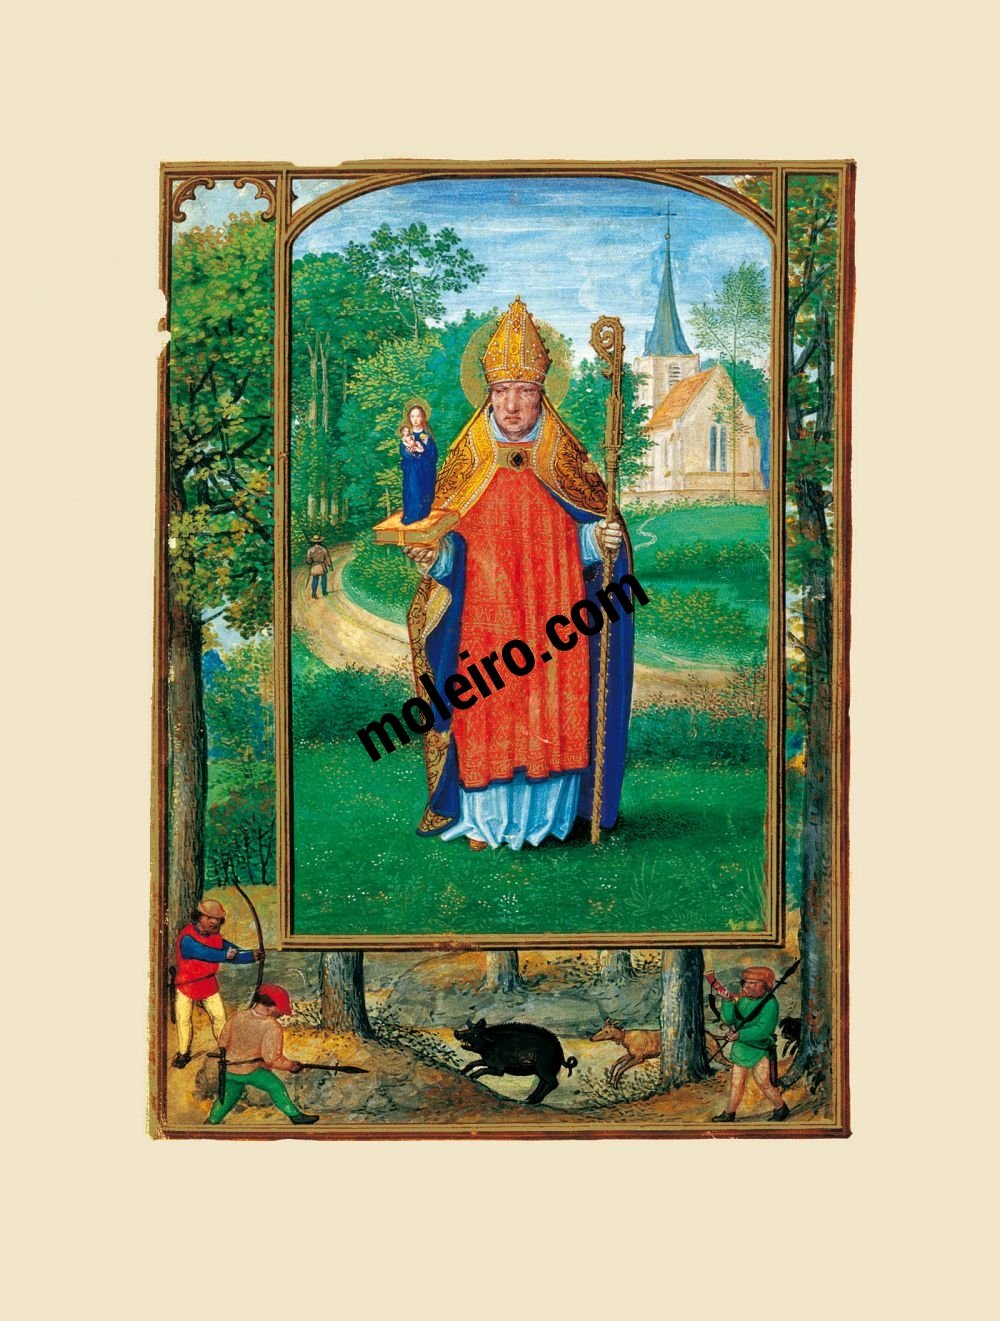 The Golf Book (Book of Hours) f. 1r, Portrait of a bishop